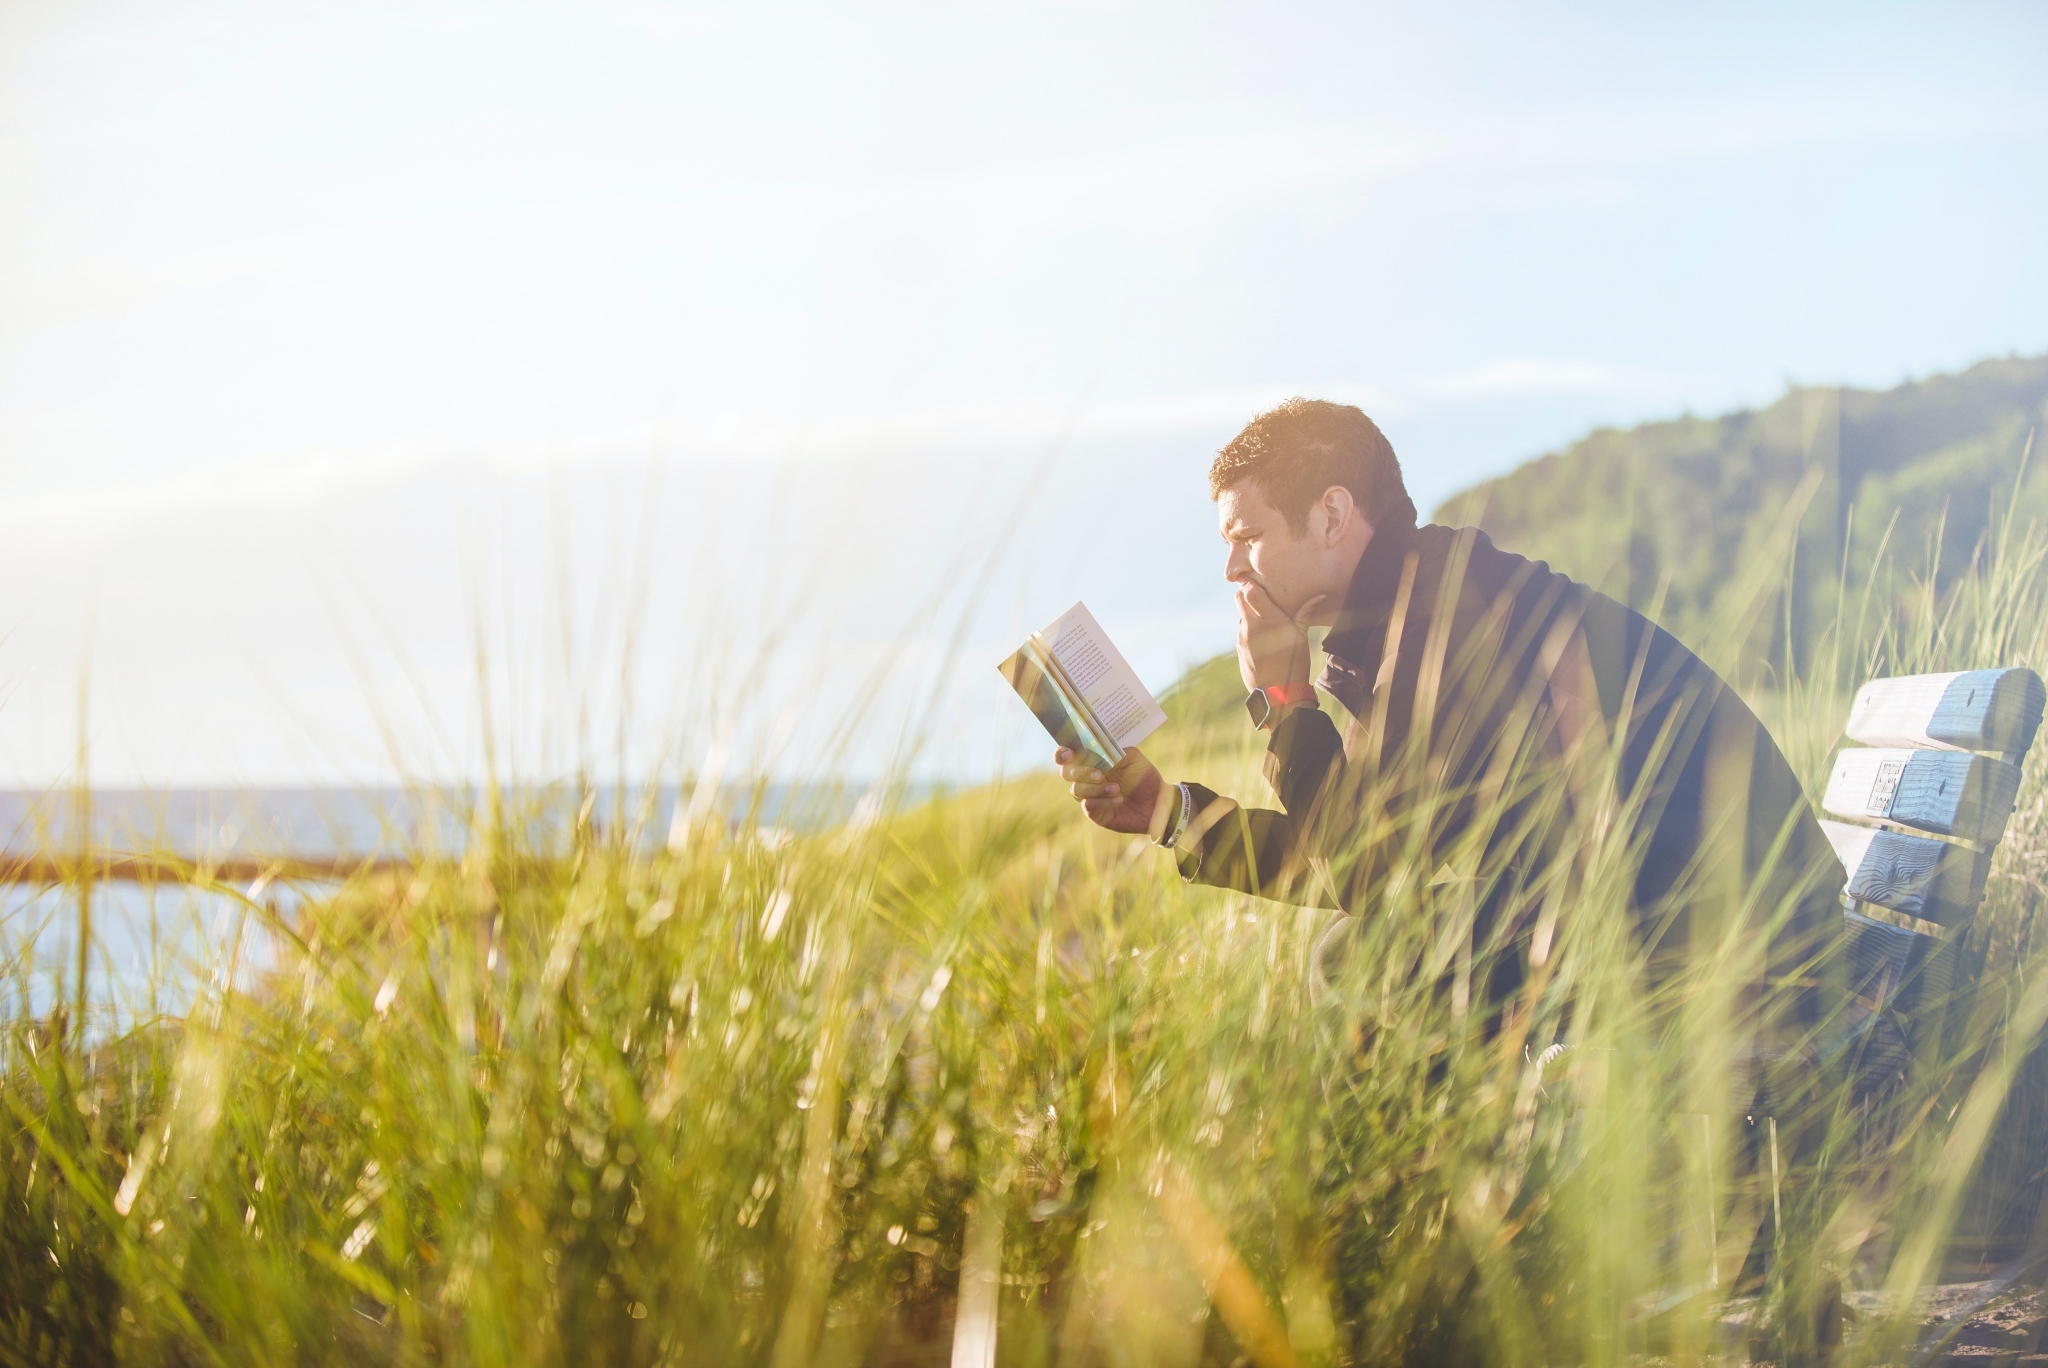 Five Books to Read While Visiting Westport